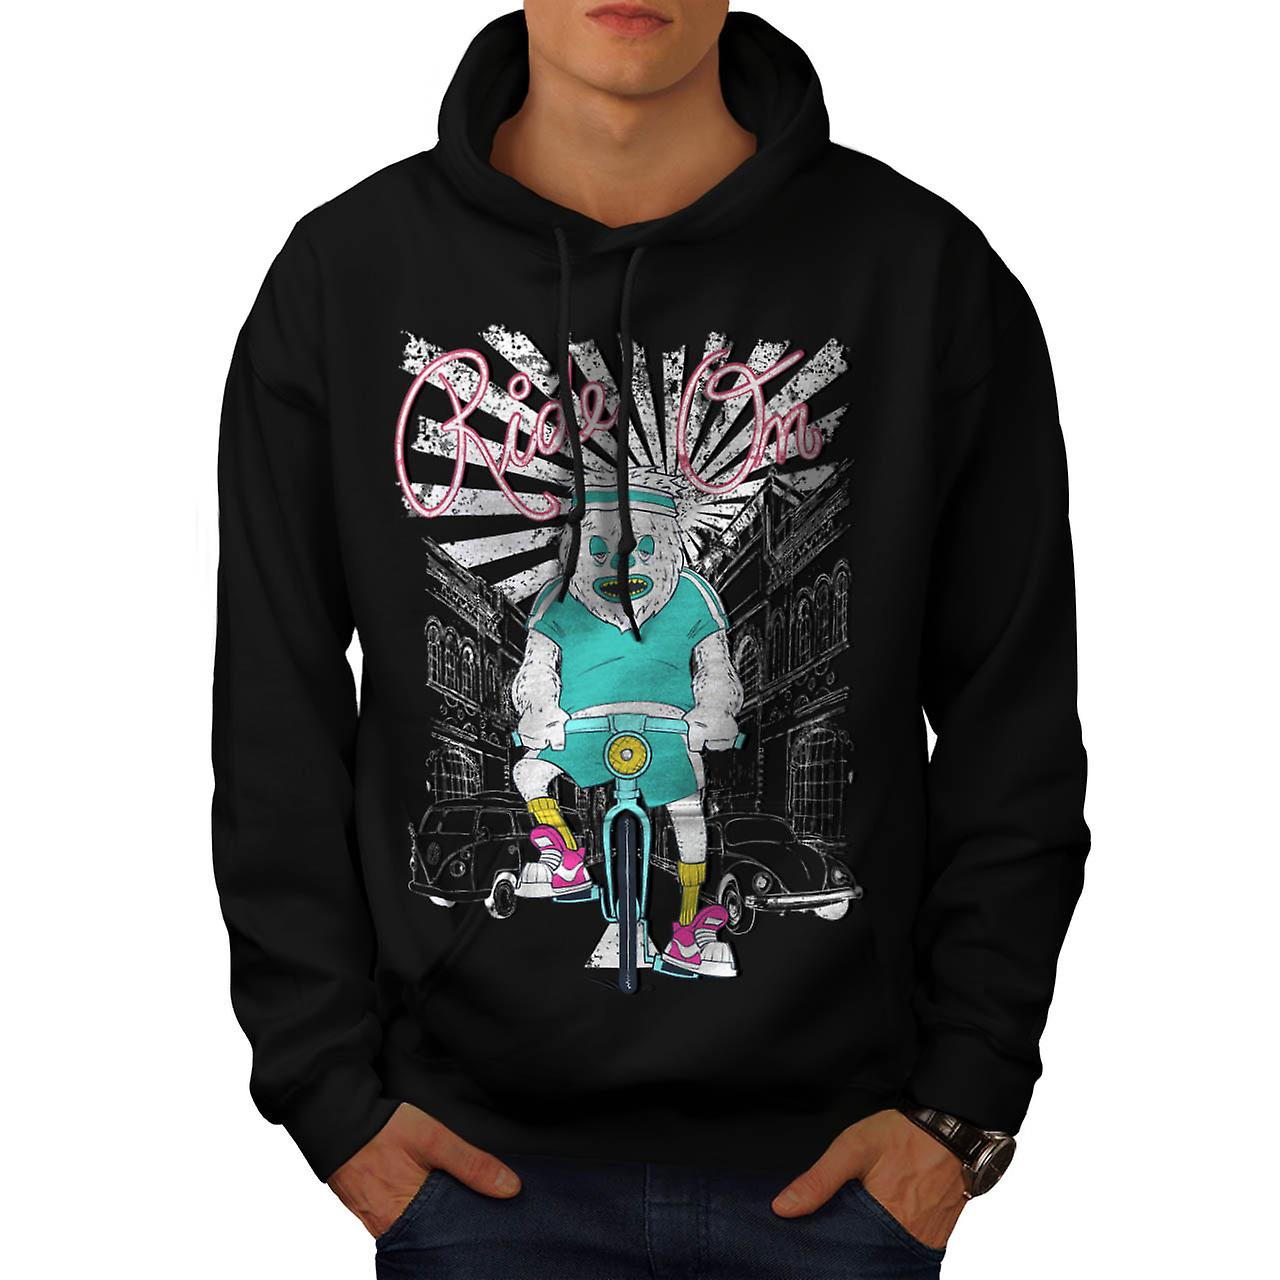 Ride On Monster Bike Cycle City Men Black Hoodie | Wellcoda